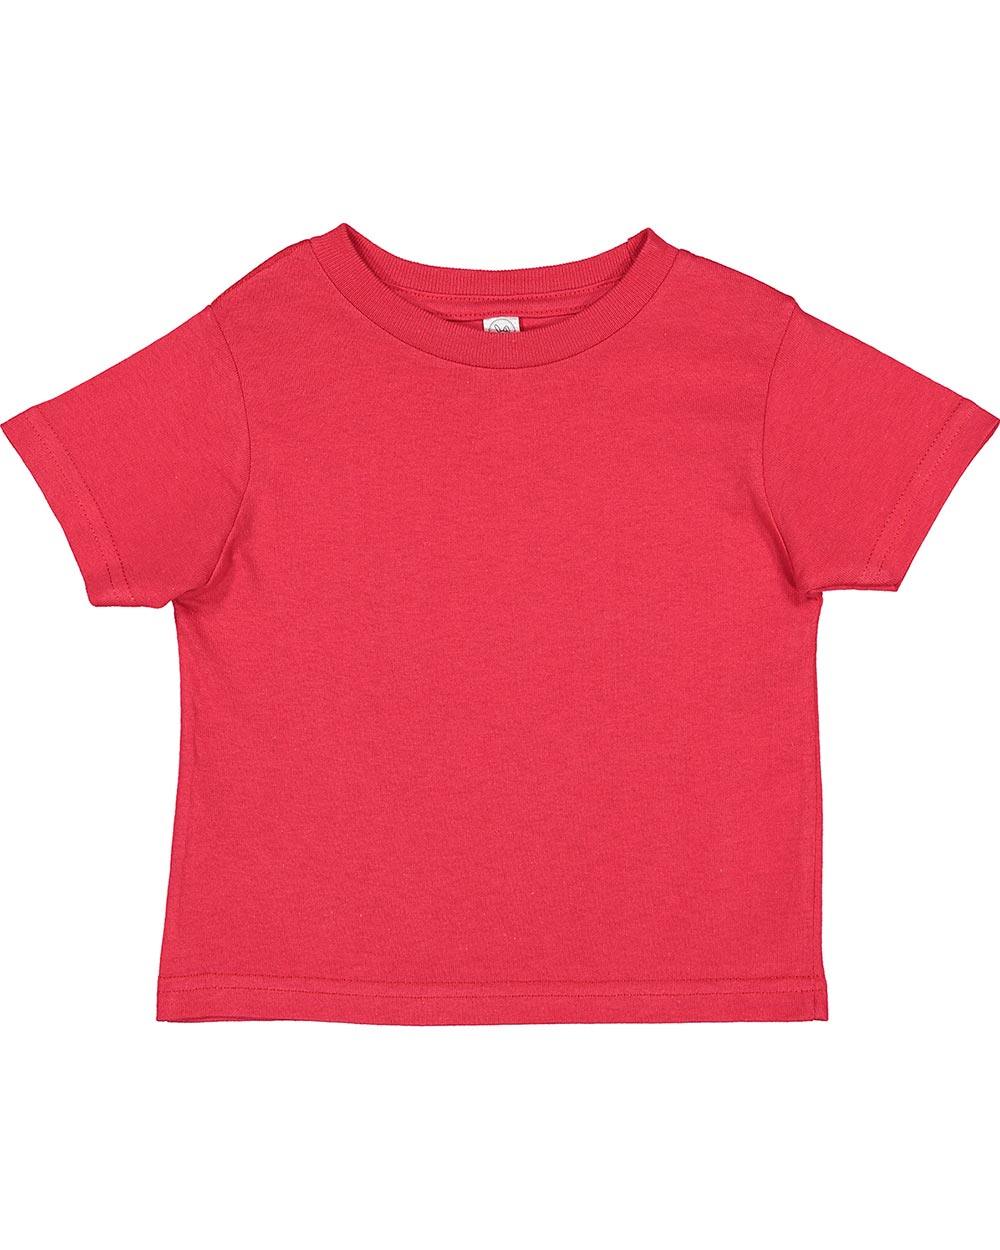 Rabbit Skins RS3301 - Toddler Cotton Jersey T-Shirt